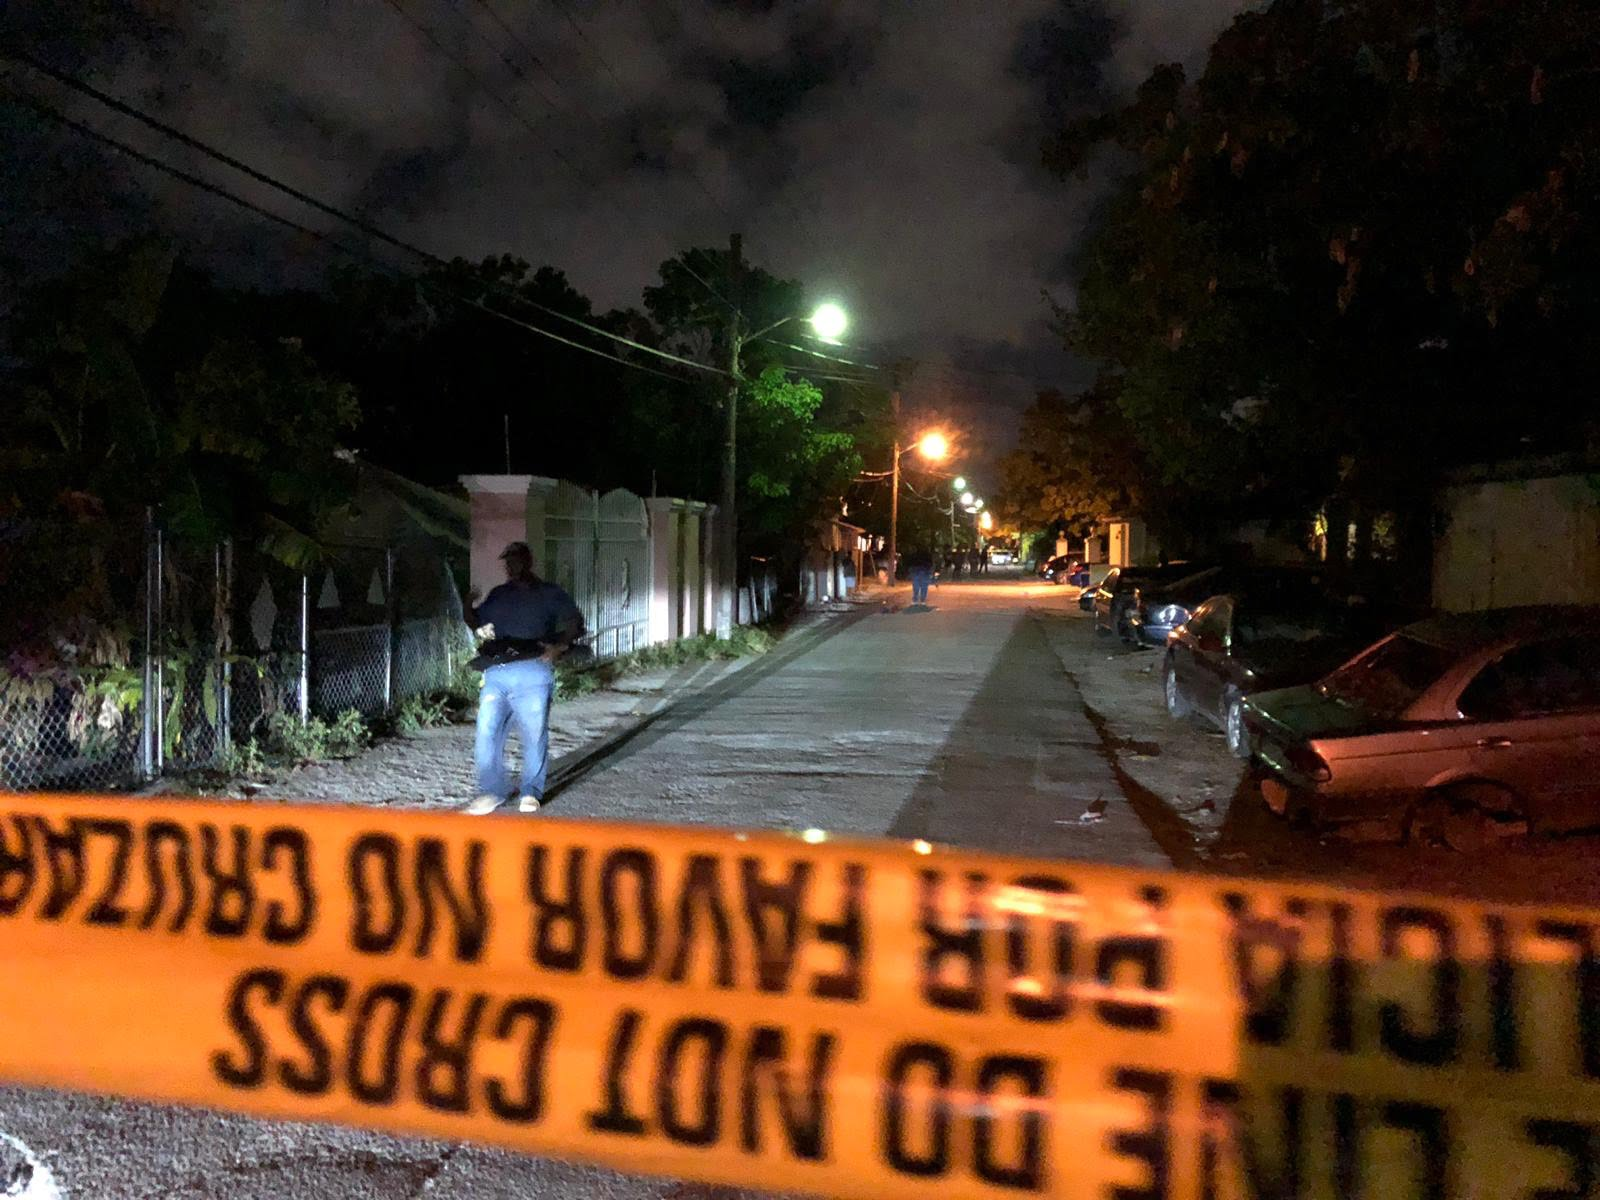 One man dead and four seriously injured in late night shooting